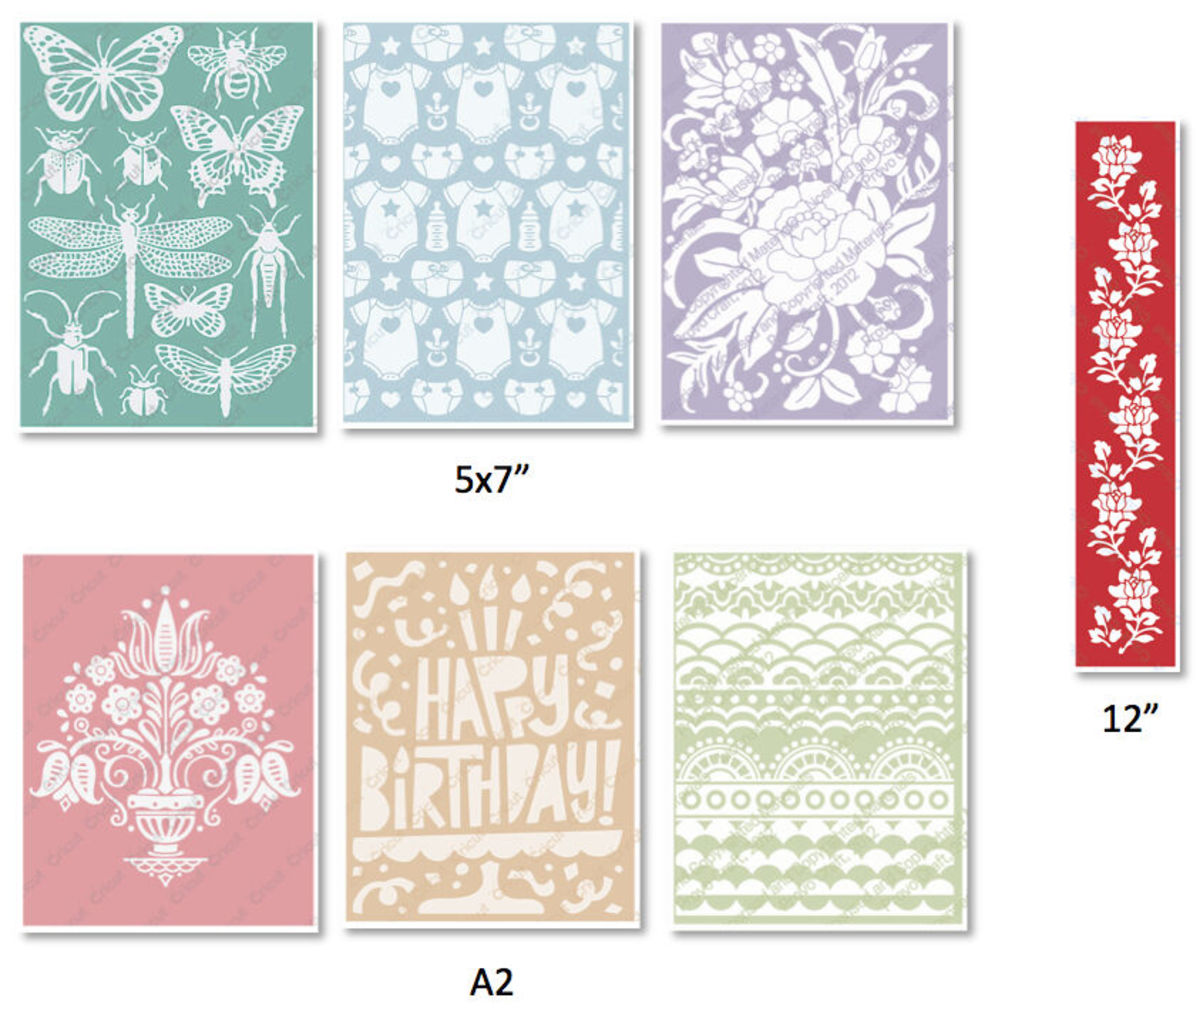 Cuttlebug embossing folders offer a wealth of design opportunities, They come in different sizes for all of your needs. They can also be used in other embossing machines